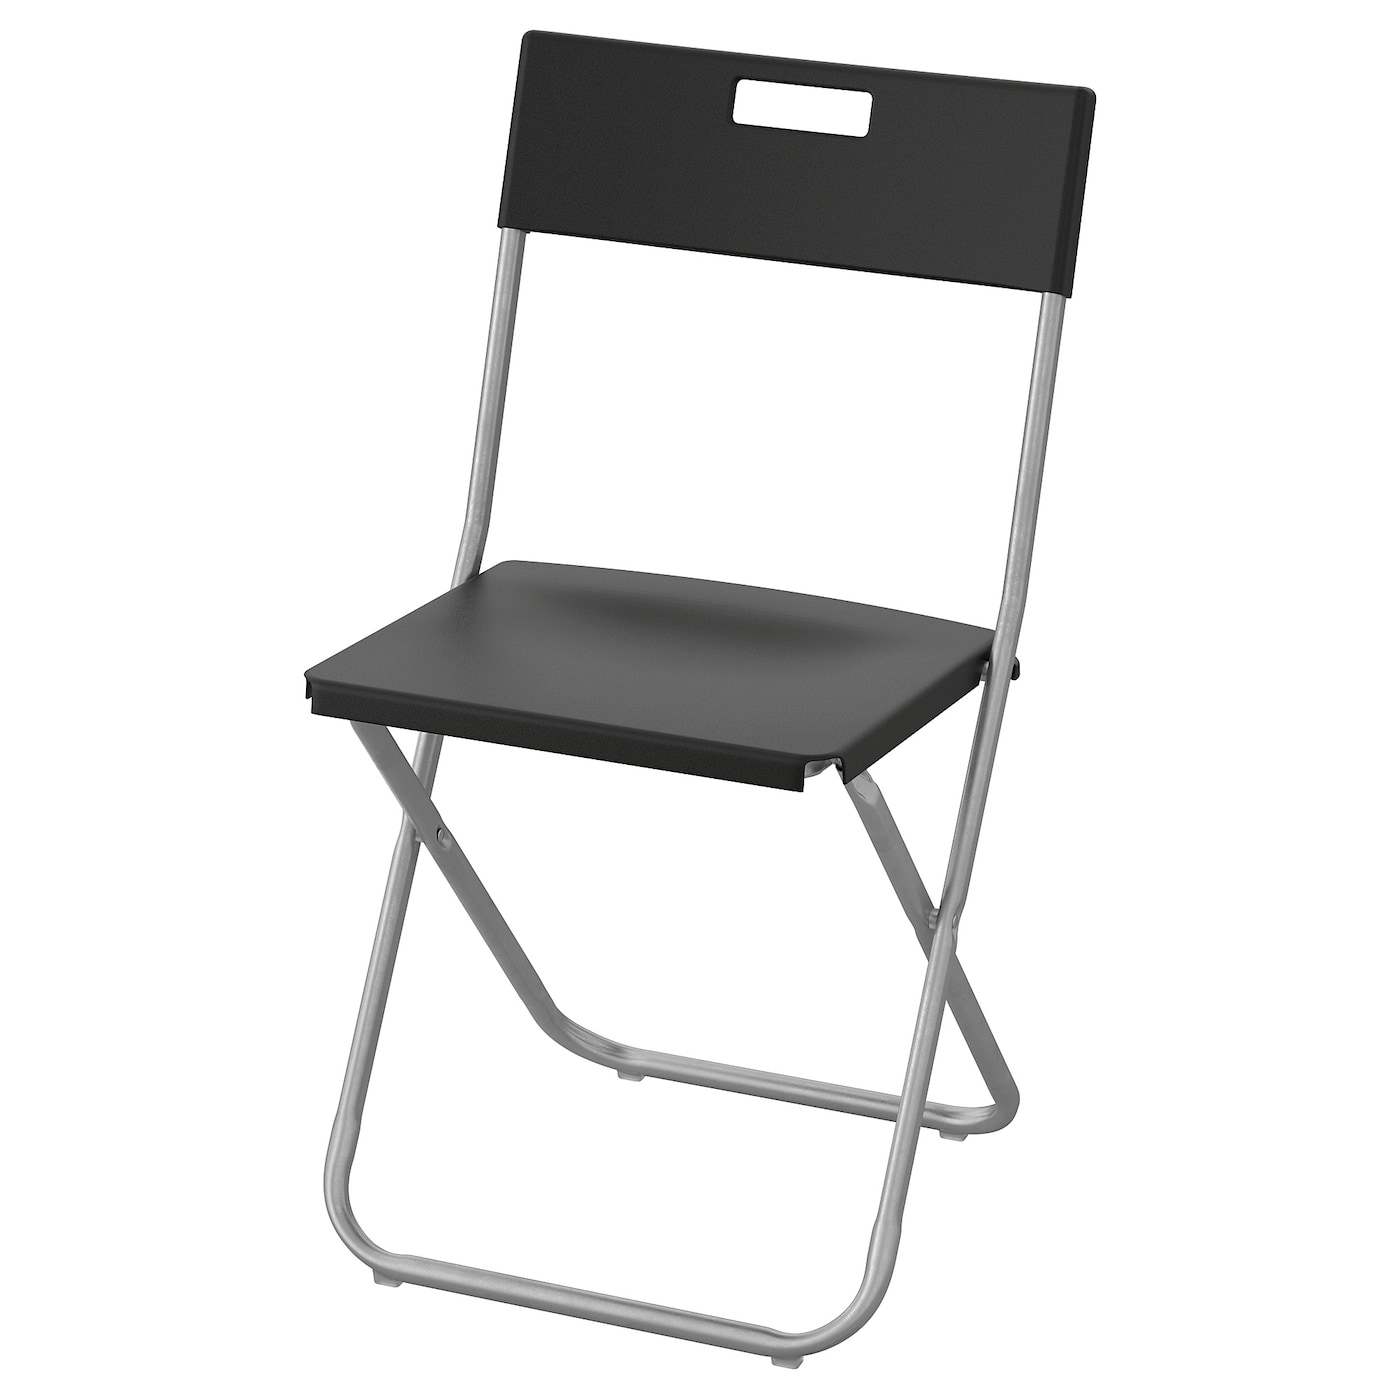 Chairs - Buy accent chair online at affordable price in india. - IKEA